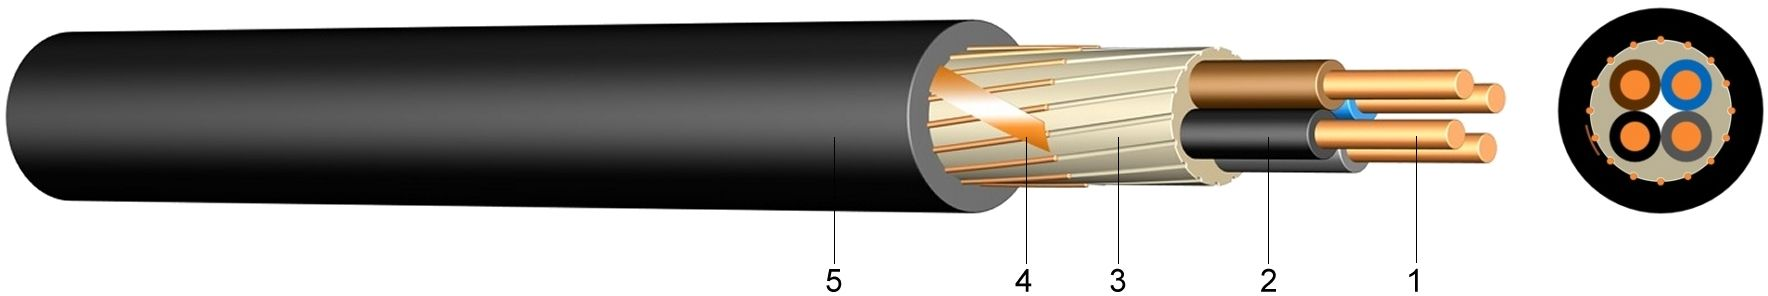 Pvc Insulated Cable Constrution : E ycy pvc insulated cable with concentric conductor